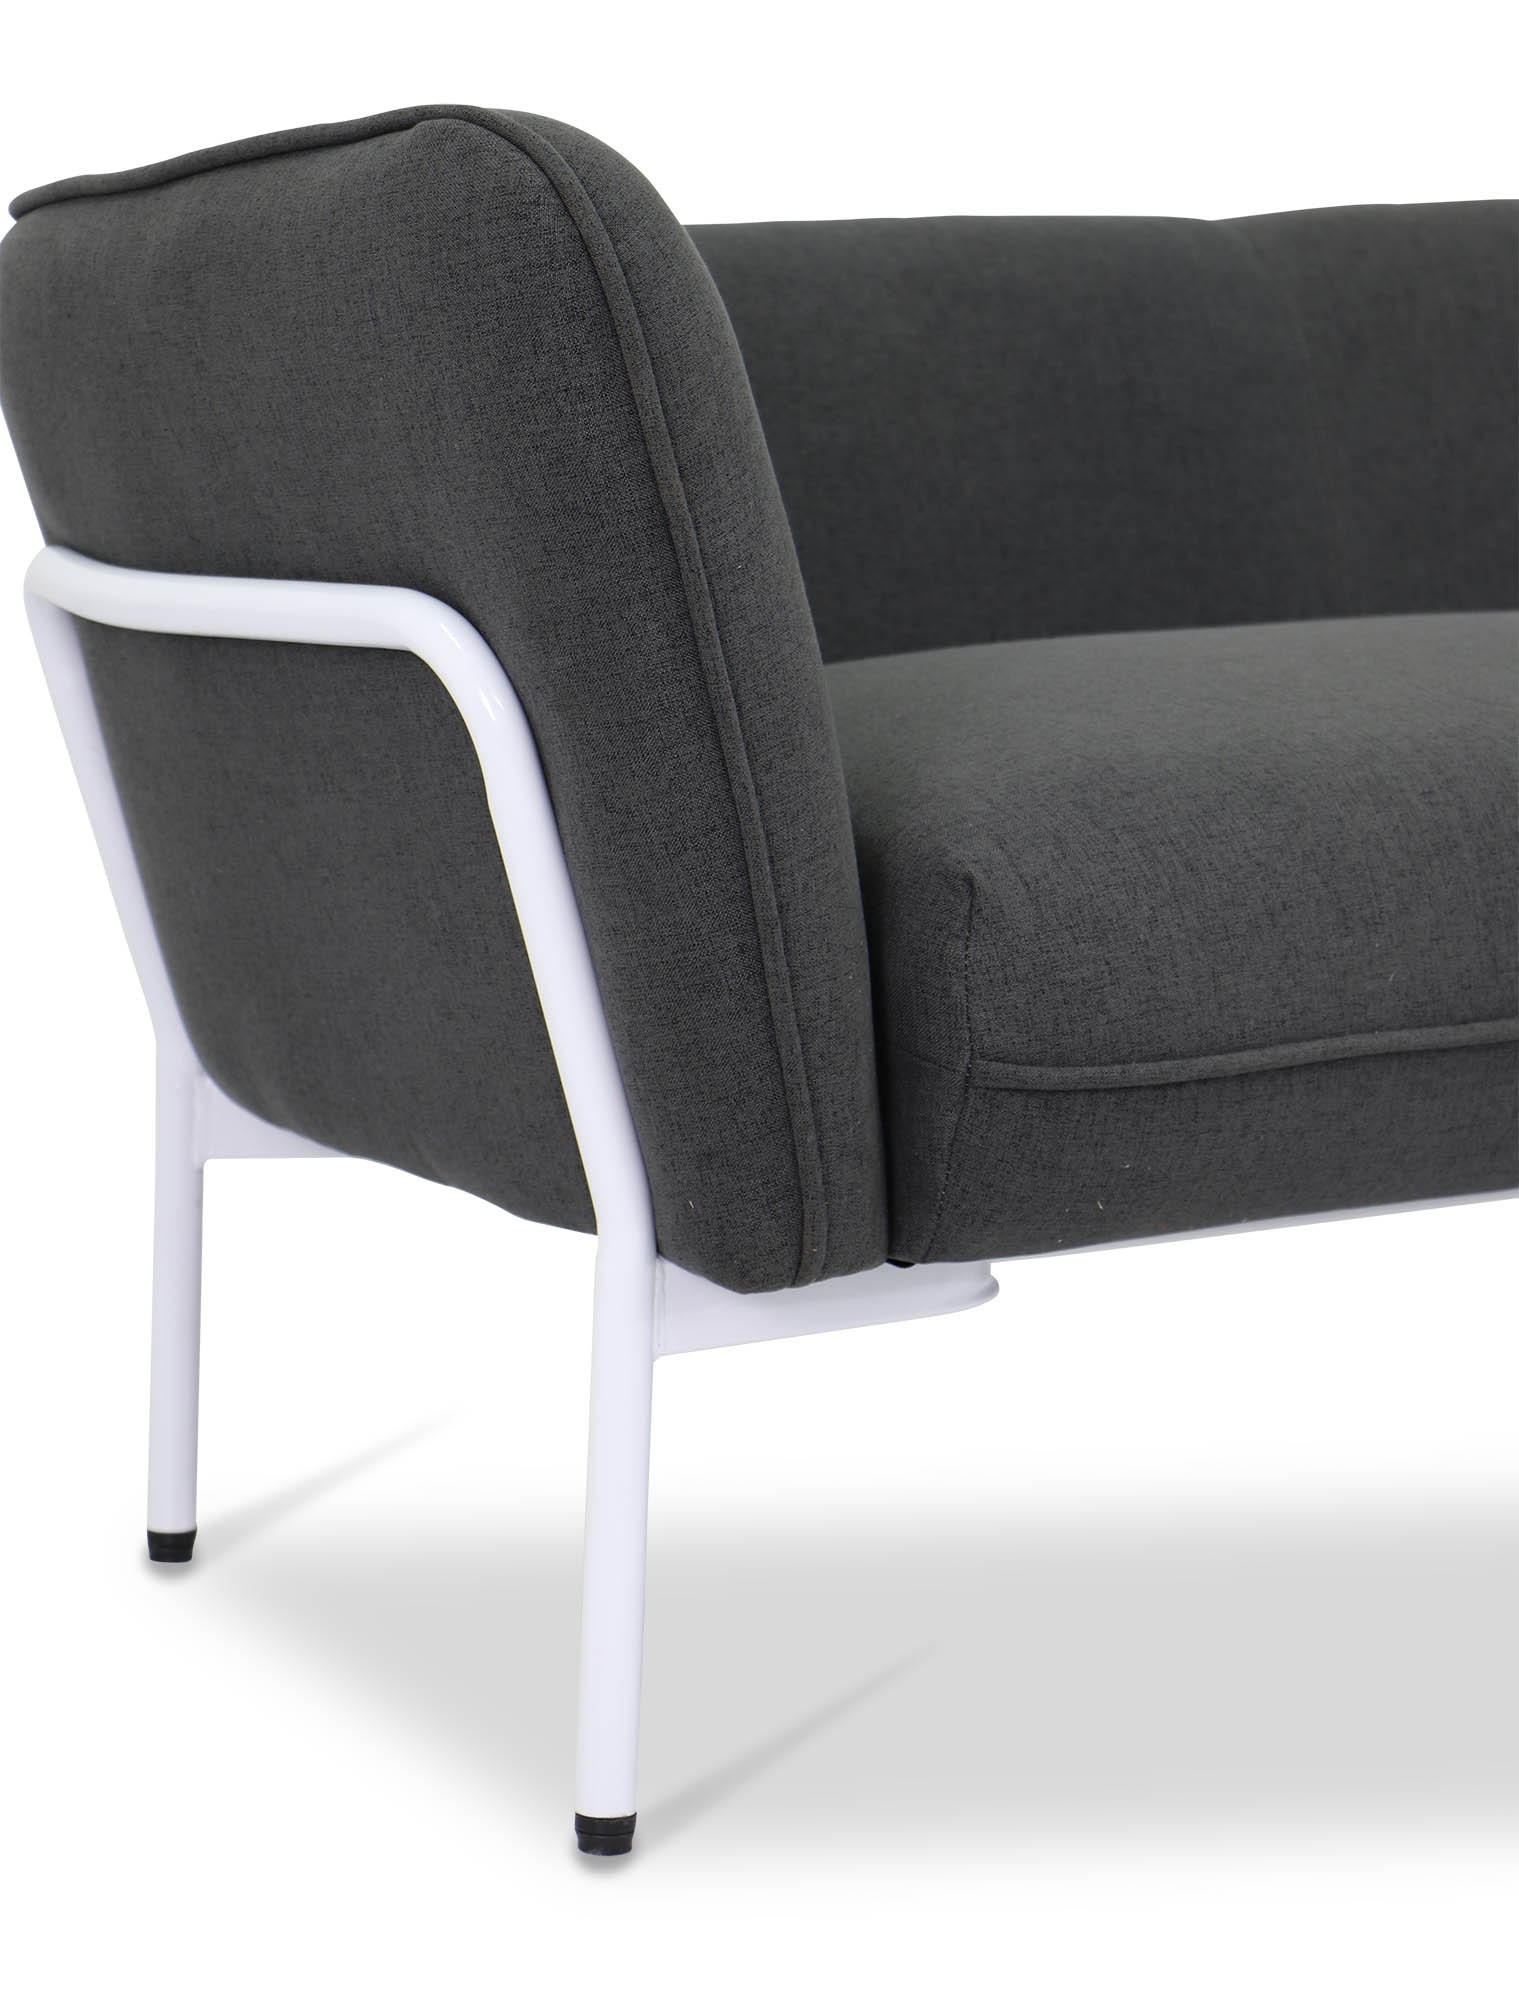 Karen Sofa In Dark Grey With White Iron Stand | Furniture & Home For Karen Sofa Chairs (Image 15 of 25)